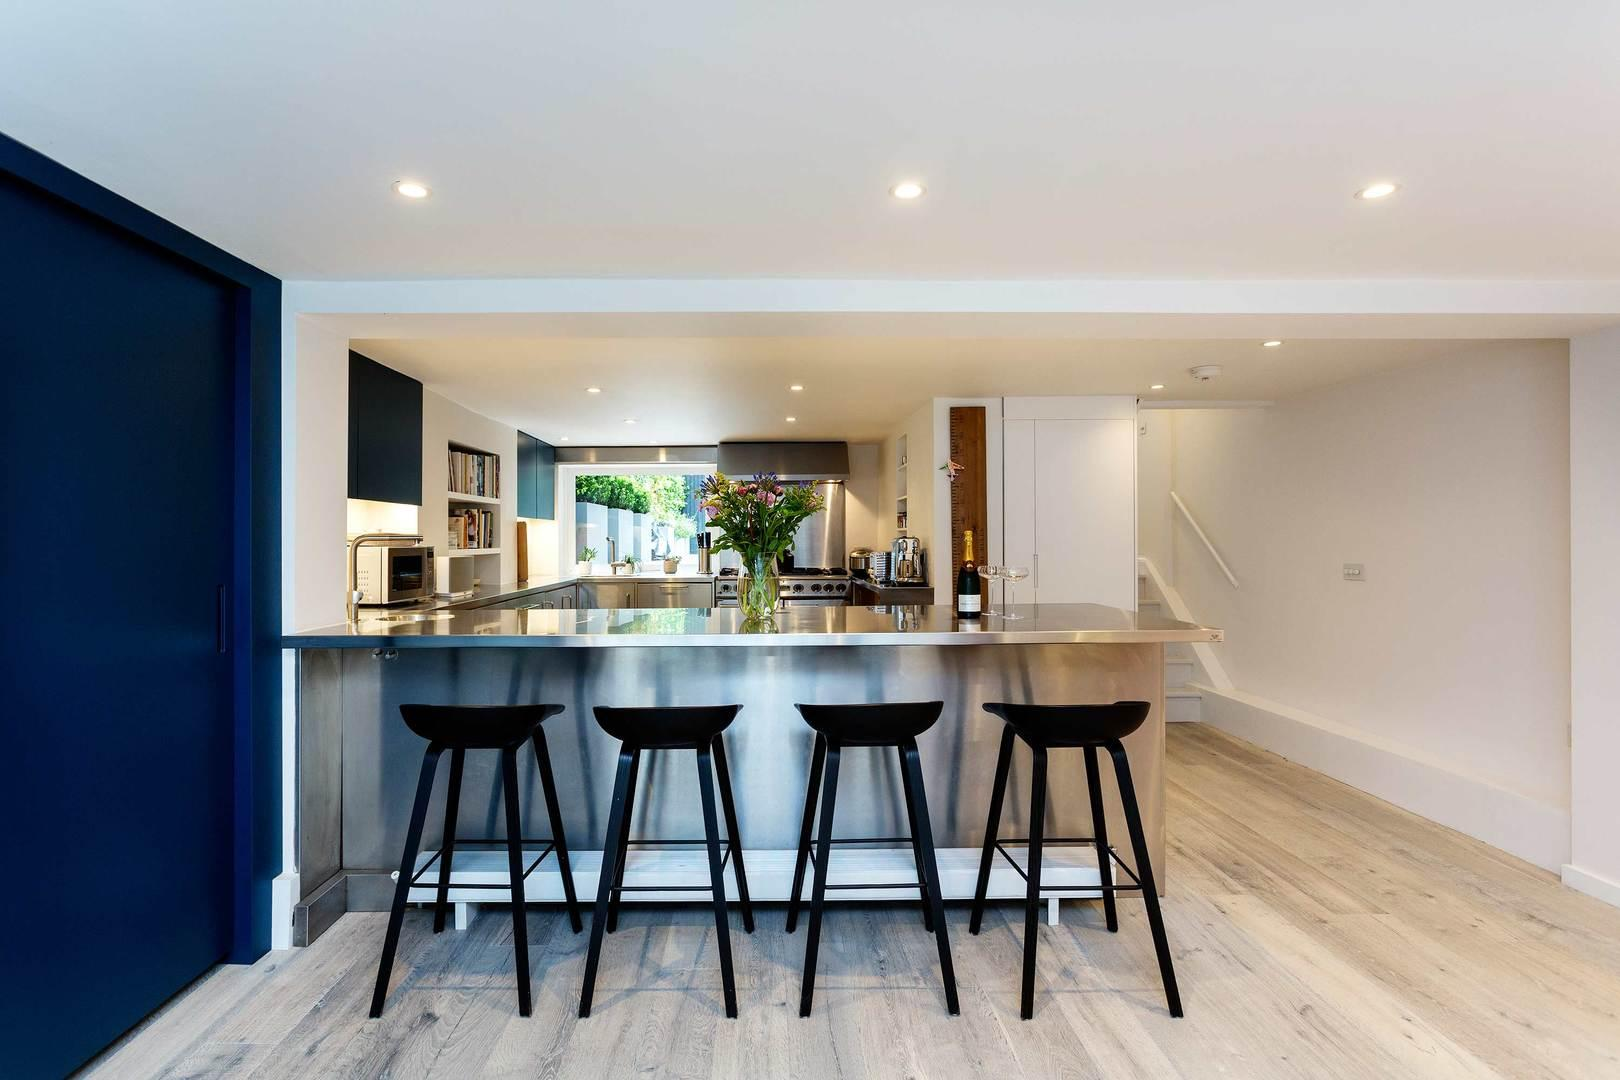 Property Image 1 - Sophisticated Shepherd's Bush Home with Roof Terrace